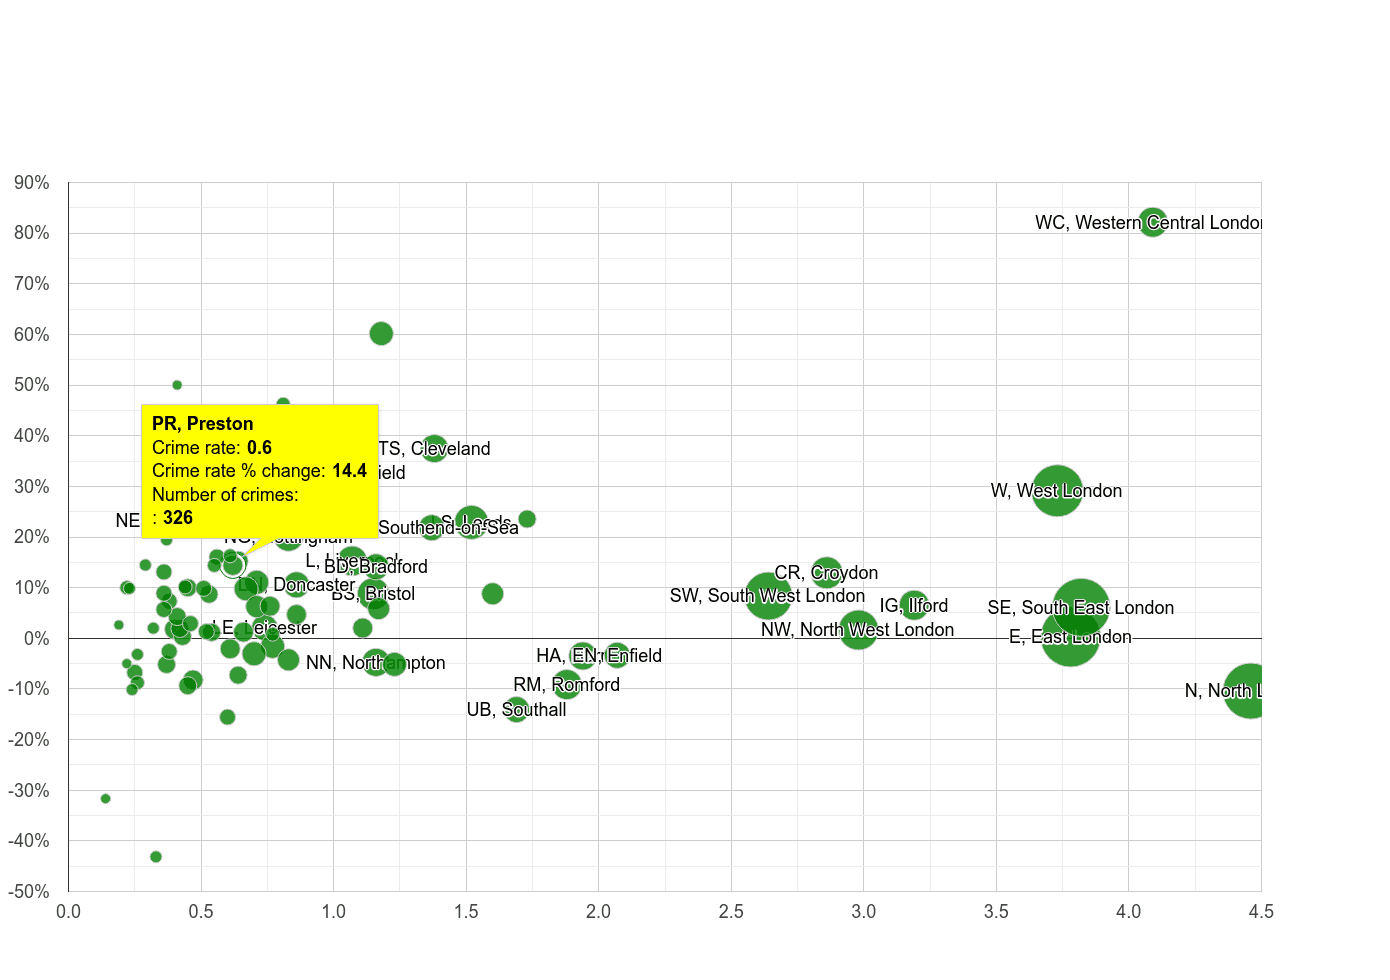 Preston robbery crime rate compared to other areas